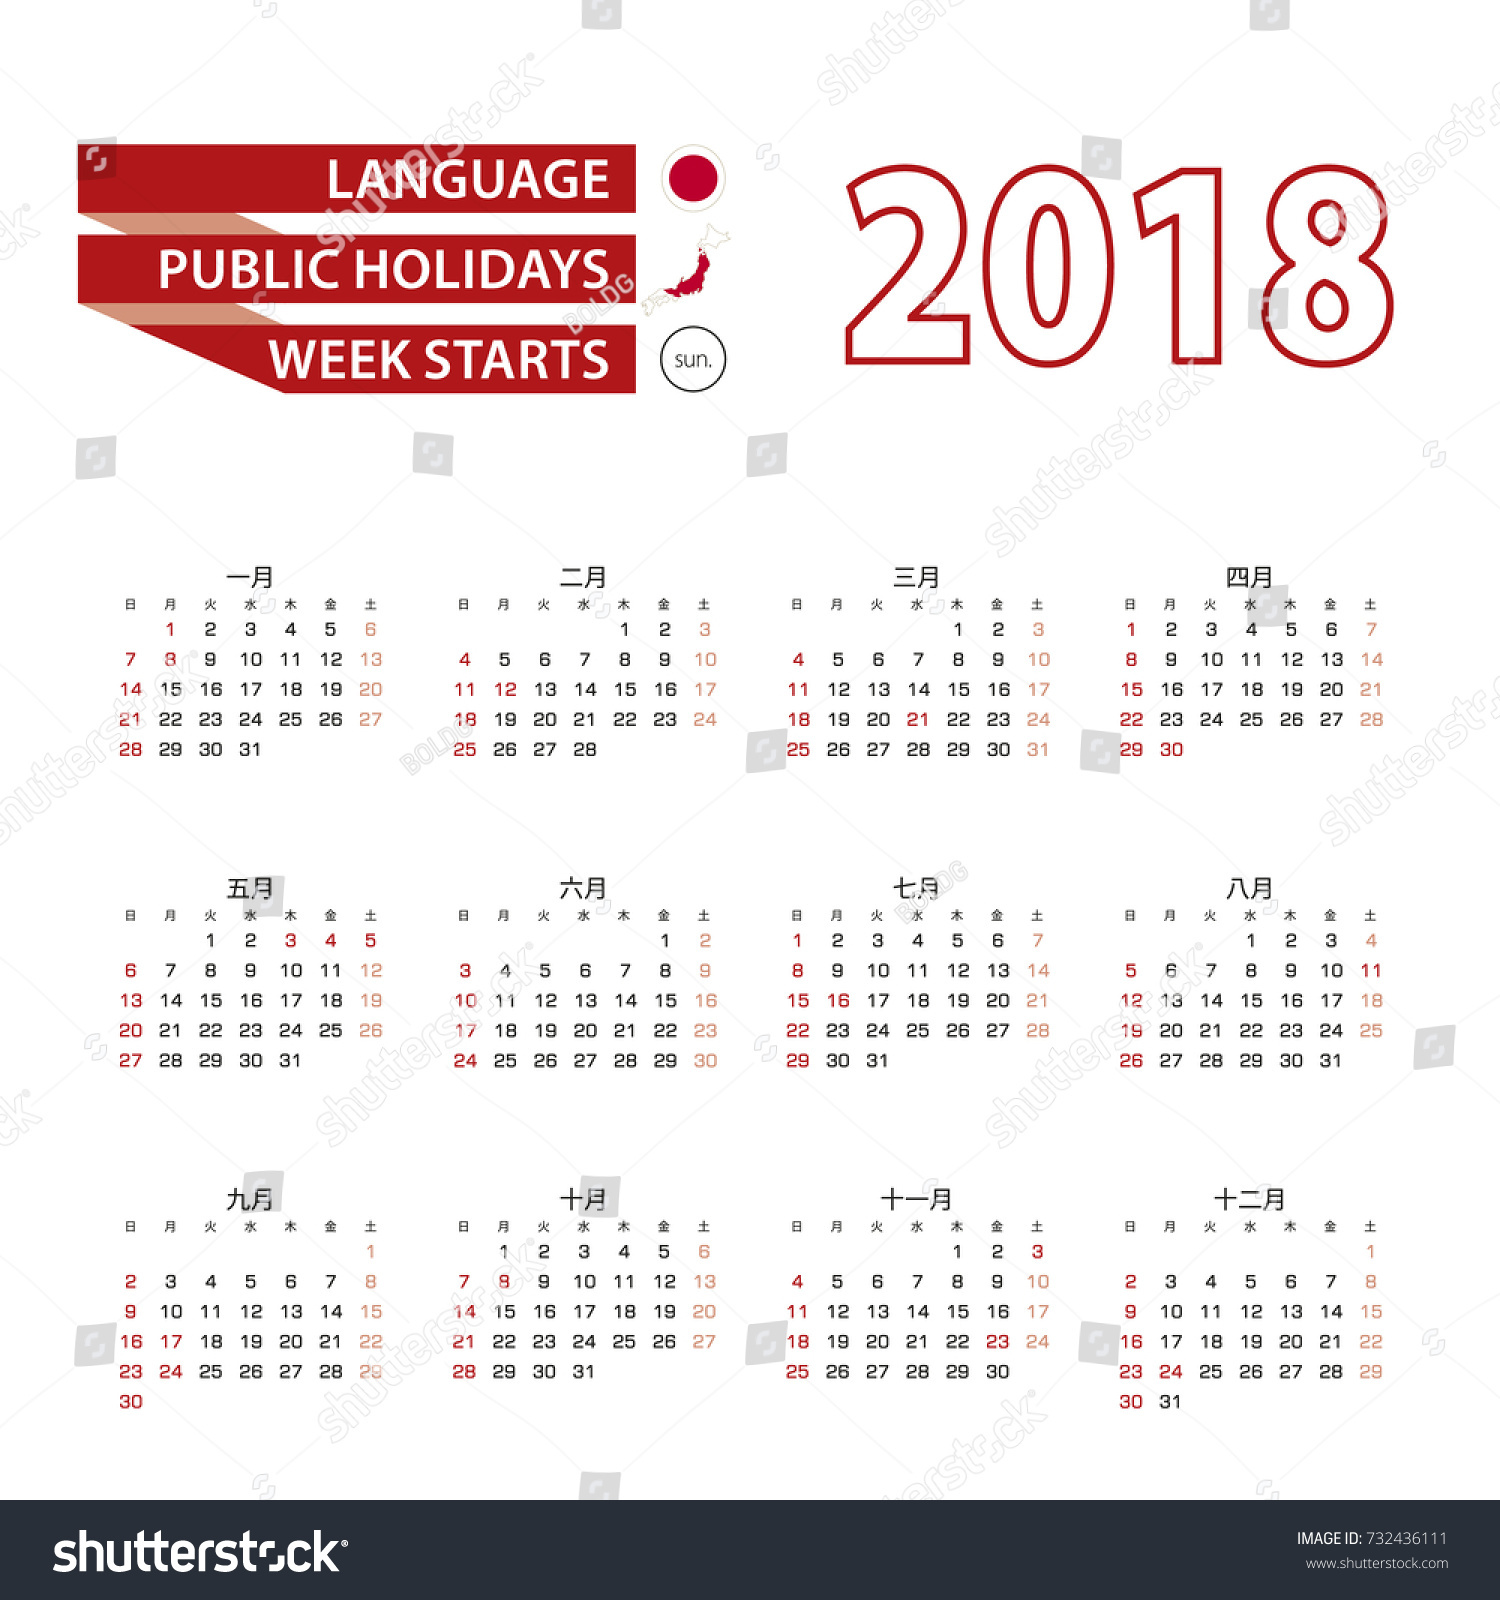 calendar 2018 in japanese language with public holidays the country of japan in year 2018